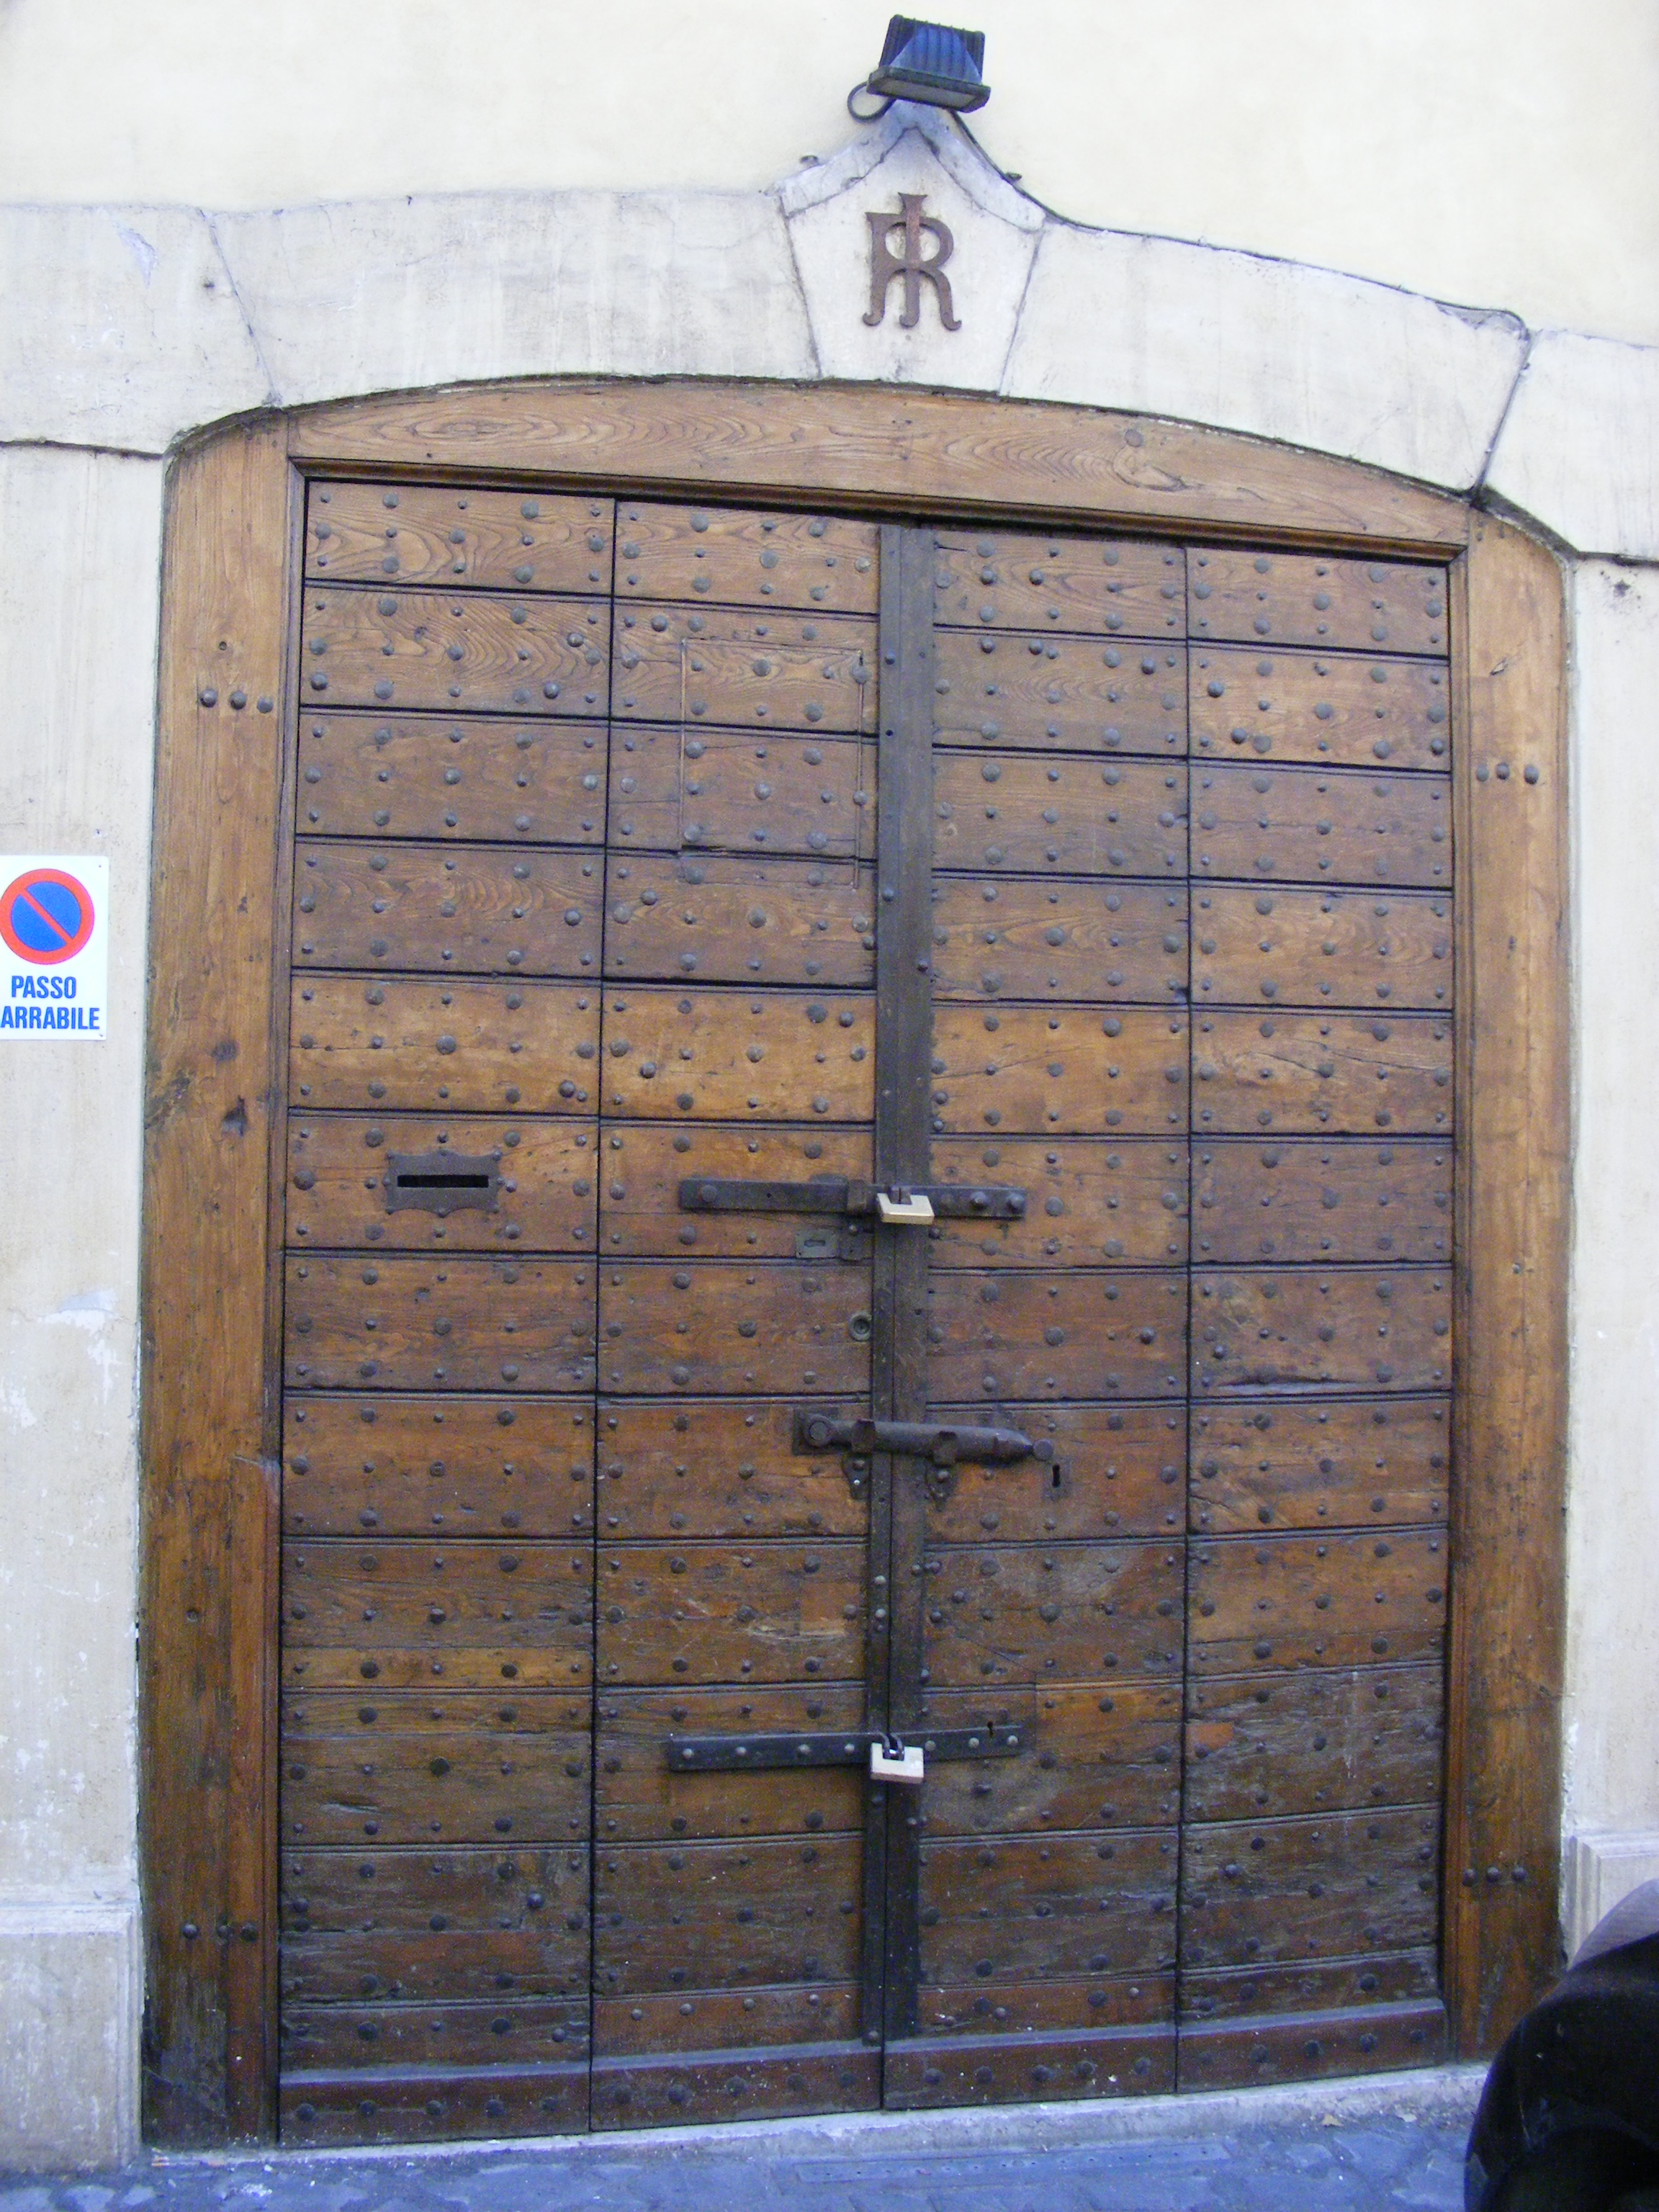 File:Old wooden door in Rome, Italy.jpg - Wikimedia Commons